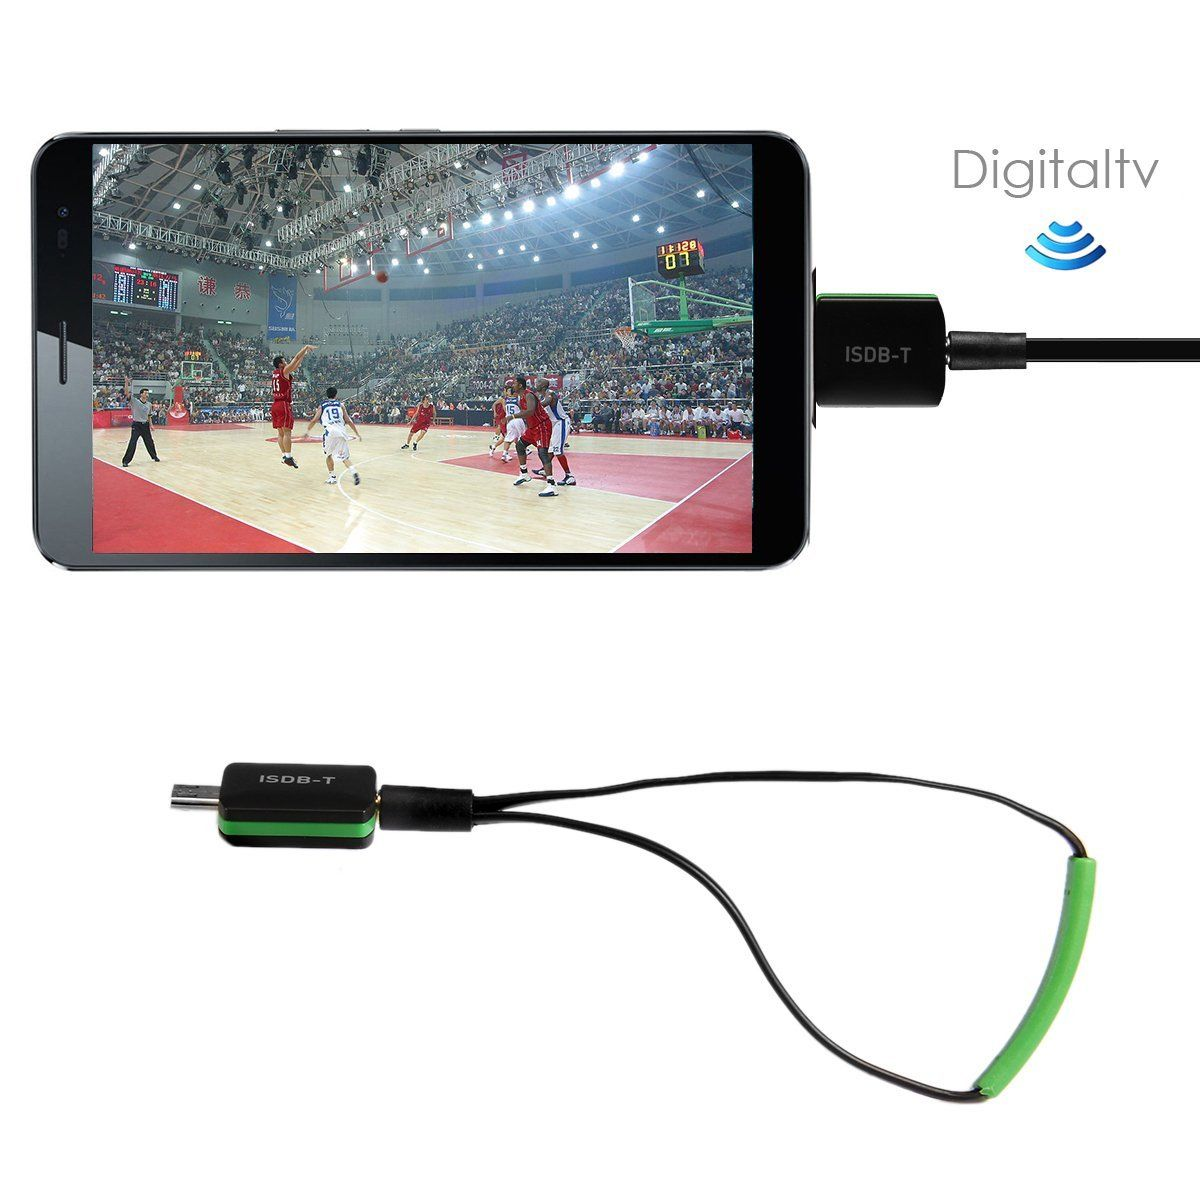 New ISDB-T Micro USB Tunner Digital HD TV Receiver for Android Smartphone Tablet PC Free Shipping(China (Mainland))